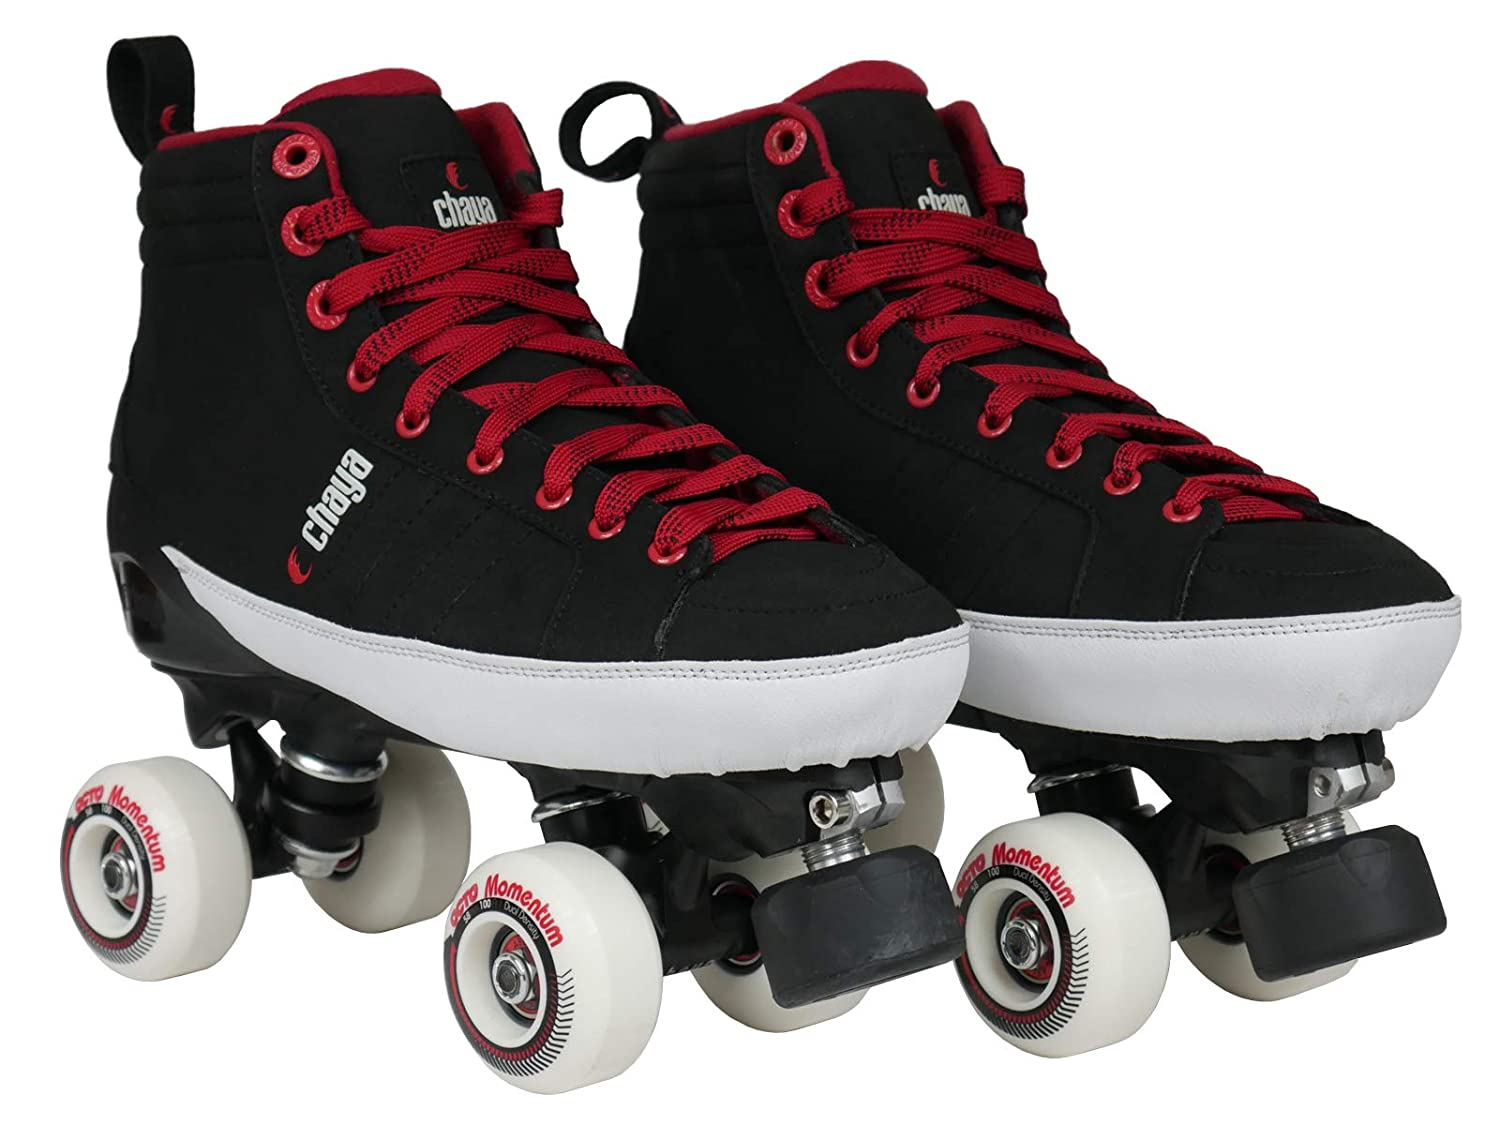 Chaya Karma Outdoor Park Roller Skate with Dual Center Mounting